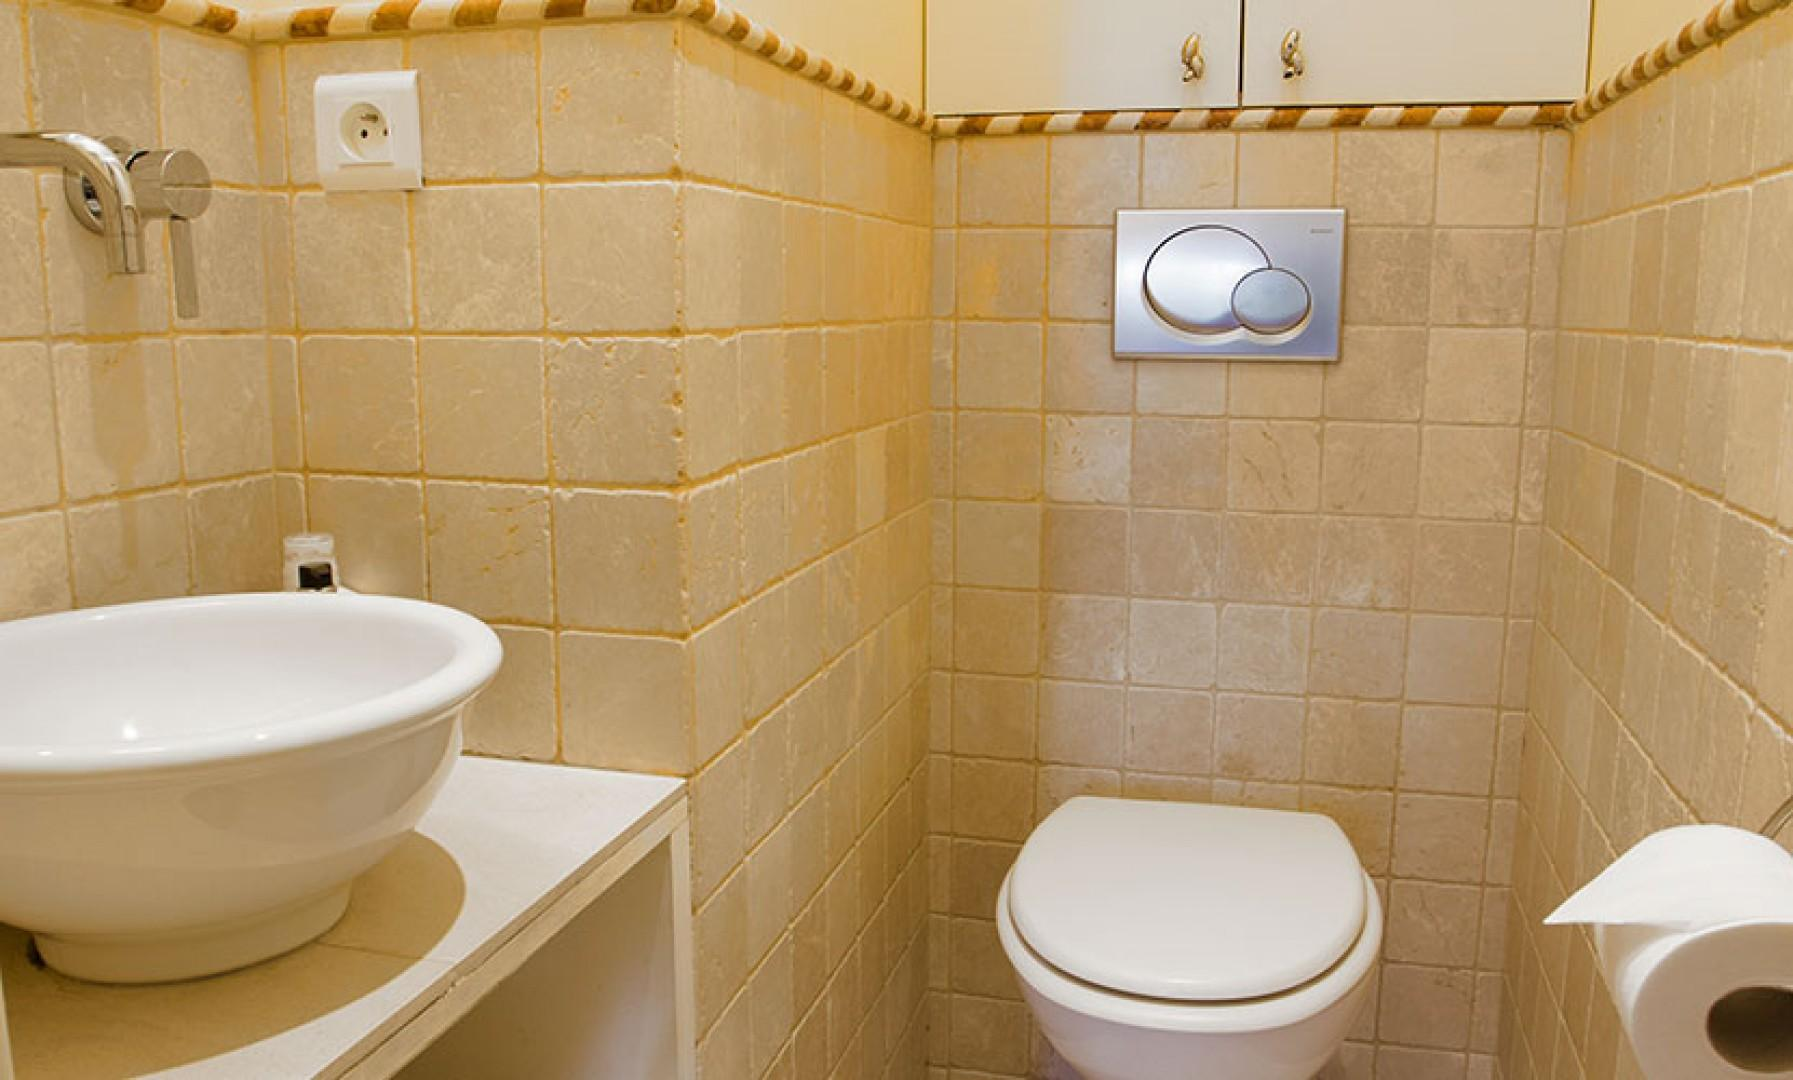 The half bath provides an extra space for getting ready.